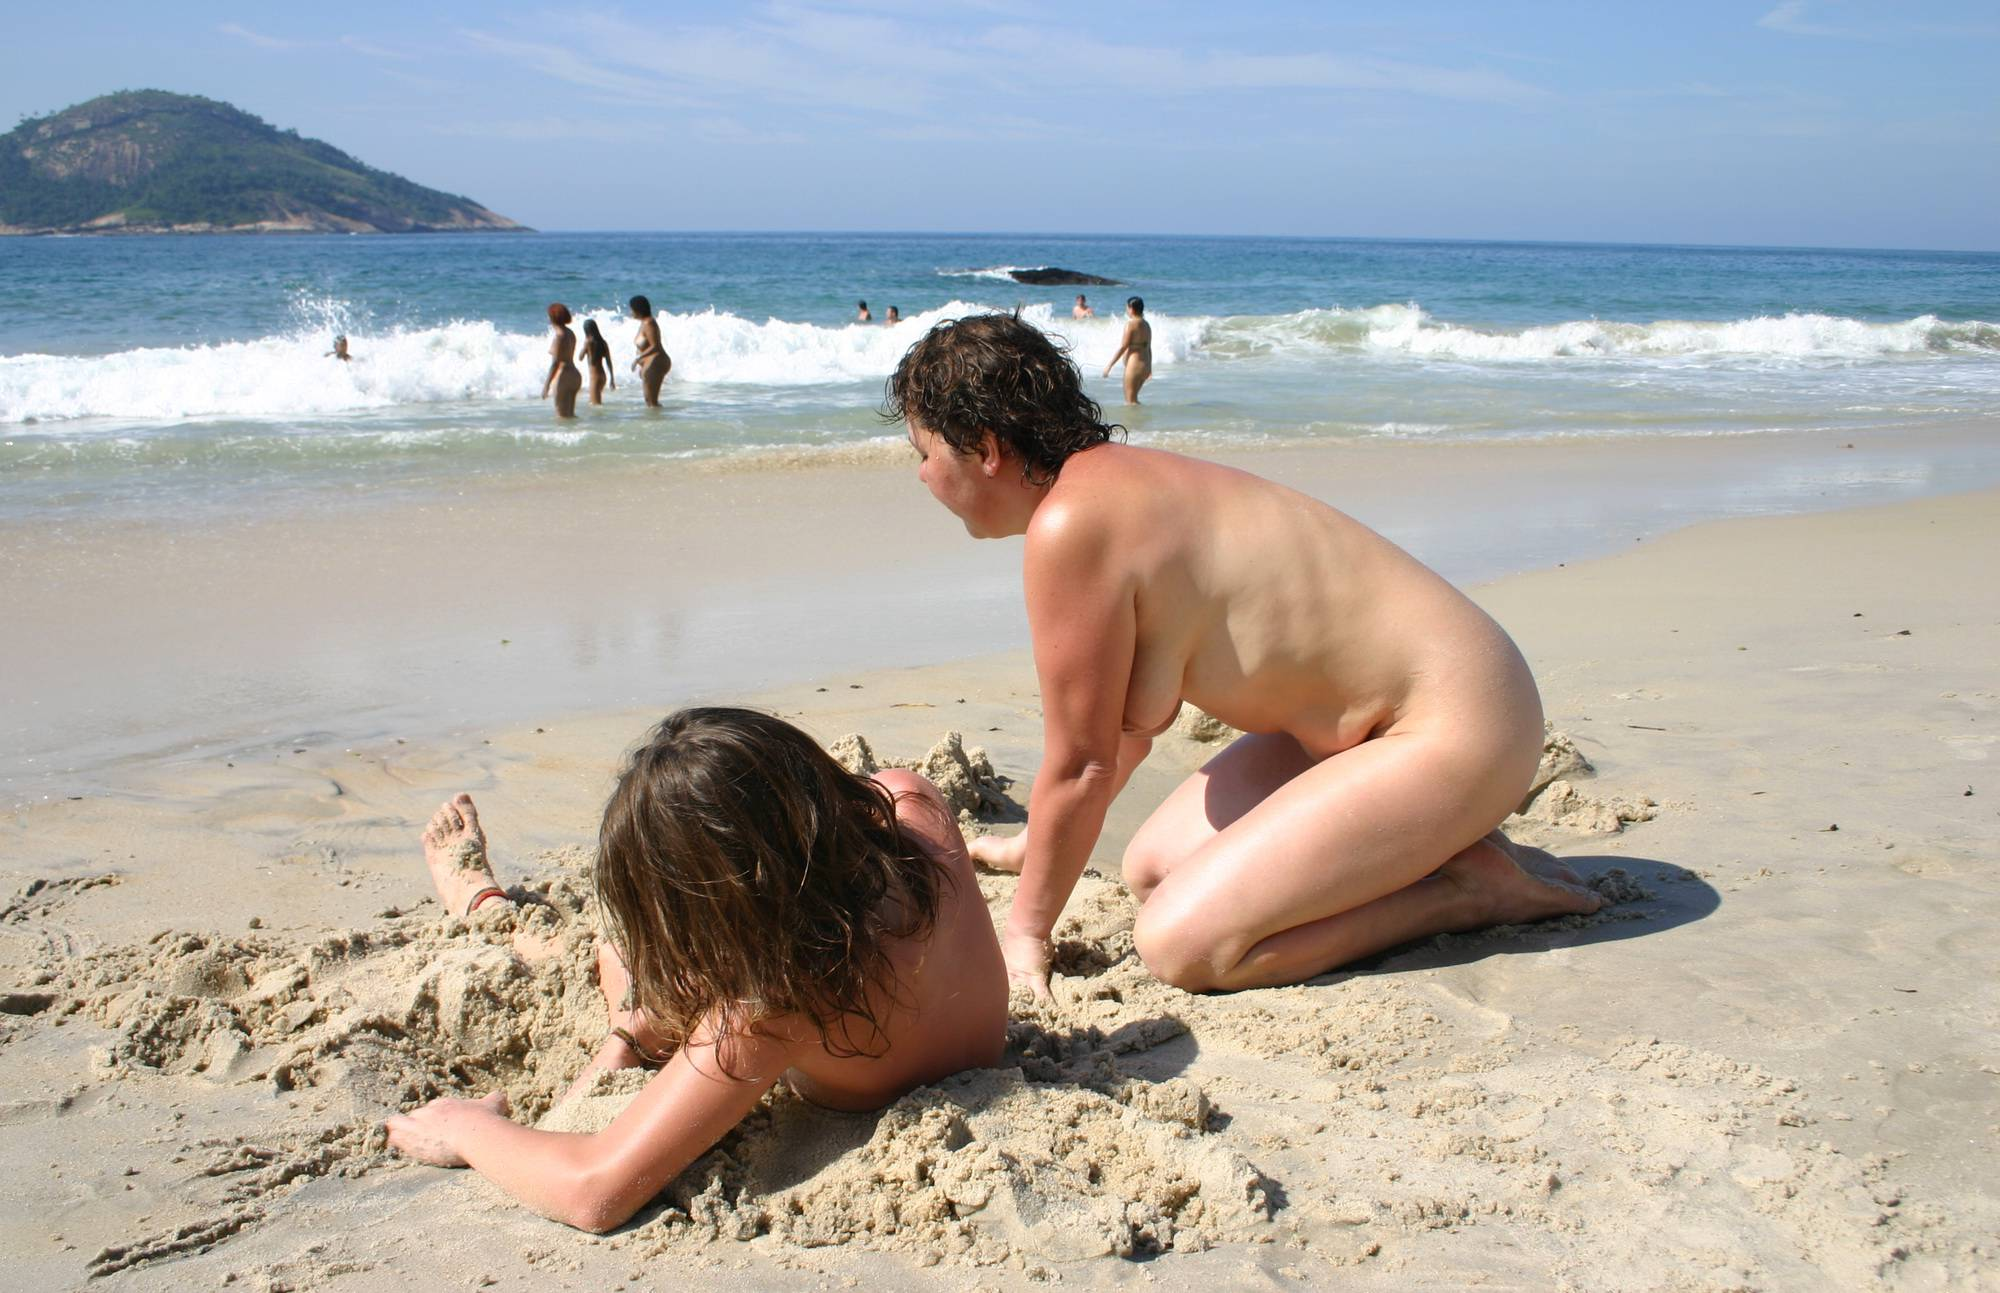 Nudist Pictures Brazilian Buried in Sands - 1